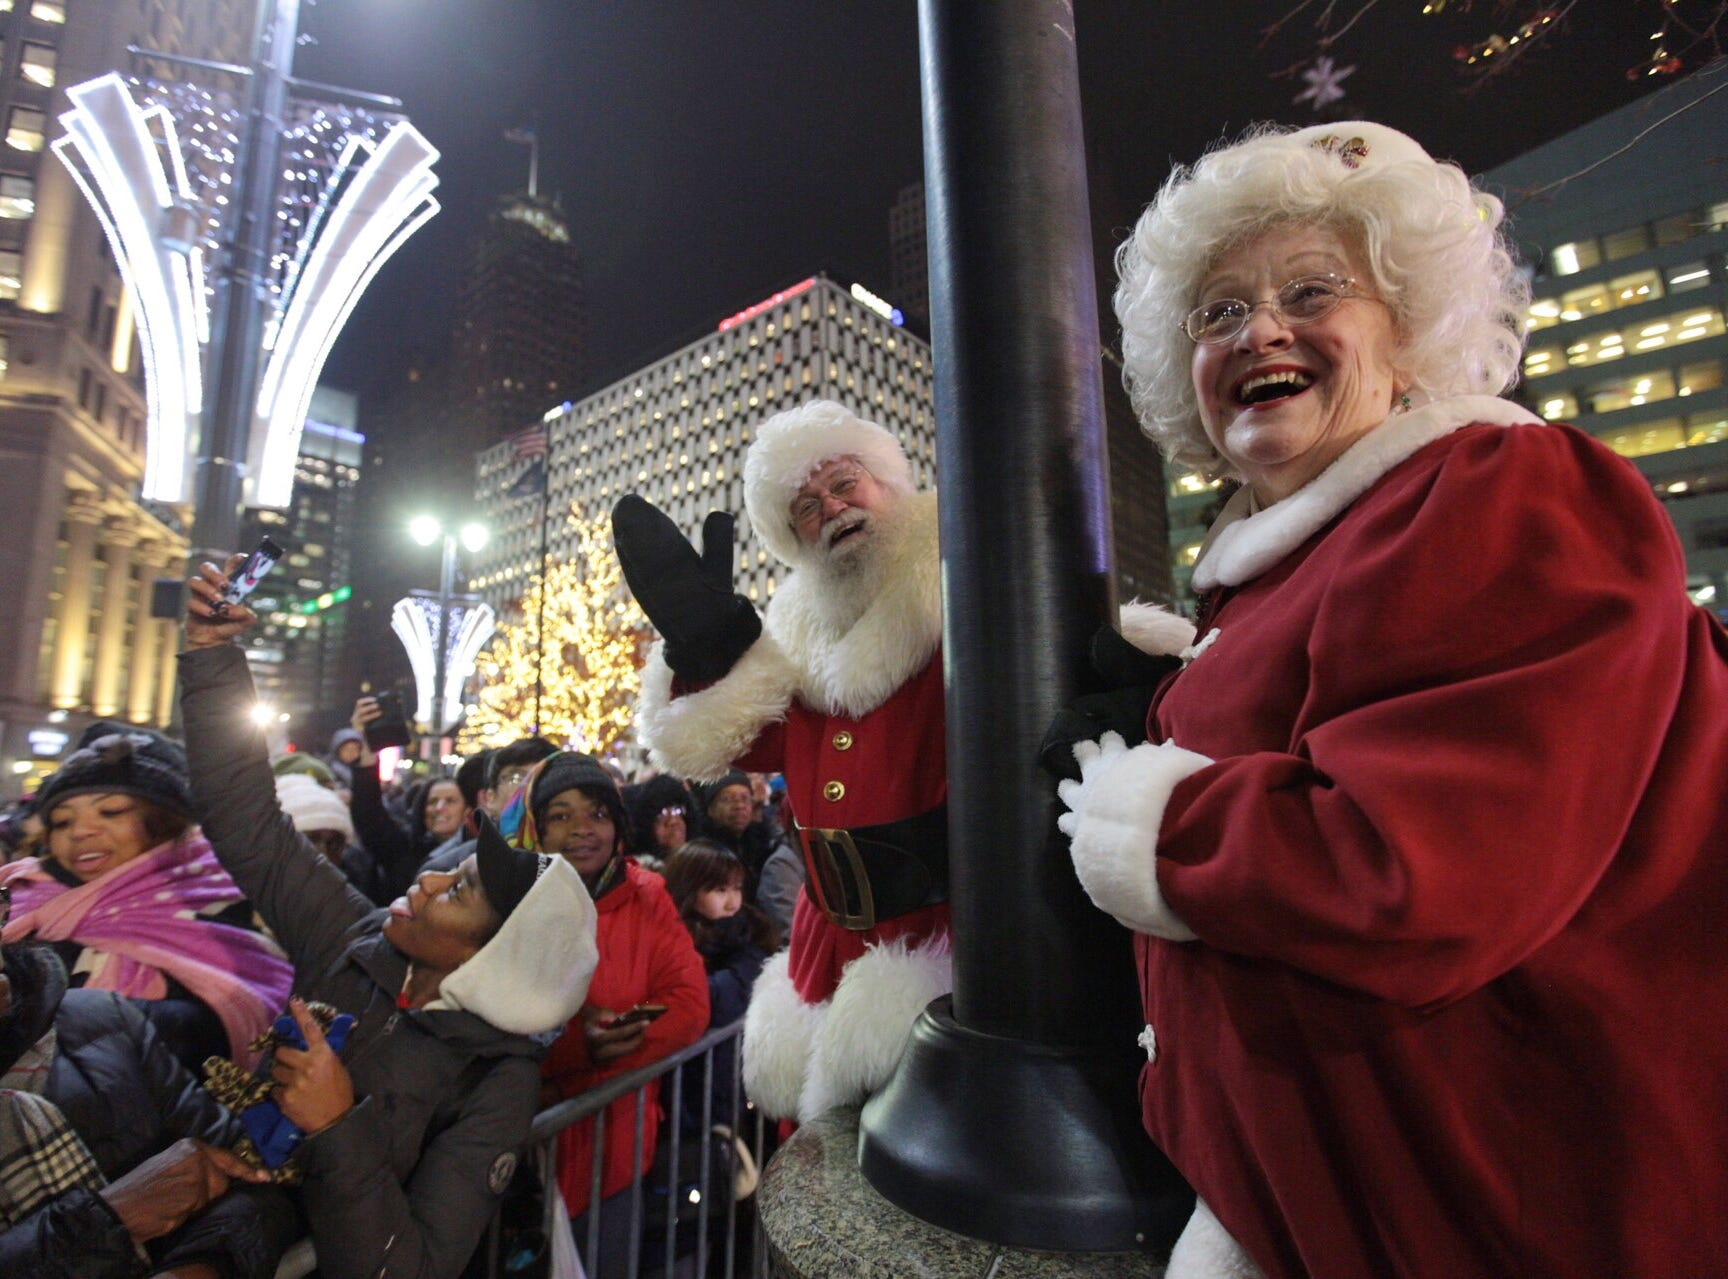 Santa Claus and Mrs. Claus wave to the crowd gathered during the annual tree lighting event at Campus Martius Park in downtown Detroit on Friday, November 16, 2018.